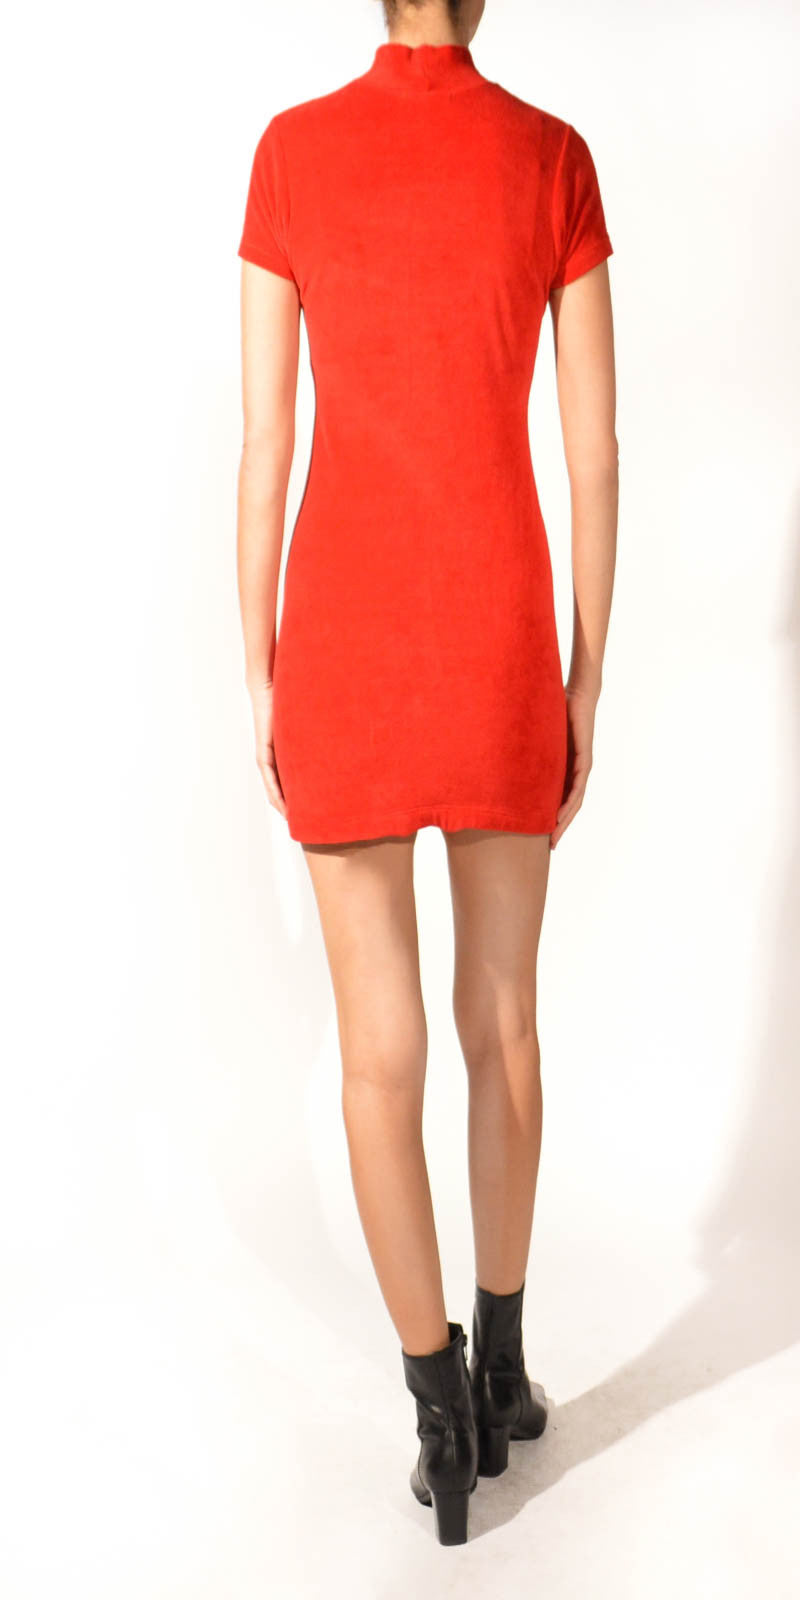 Kings Road Velvet Vintage Sexy Red Dress: Size S